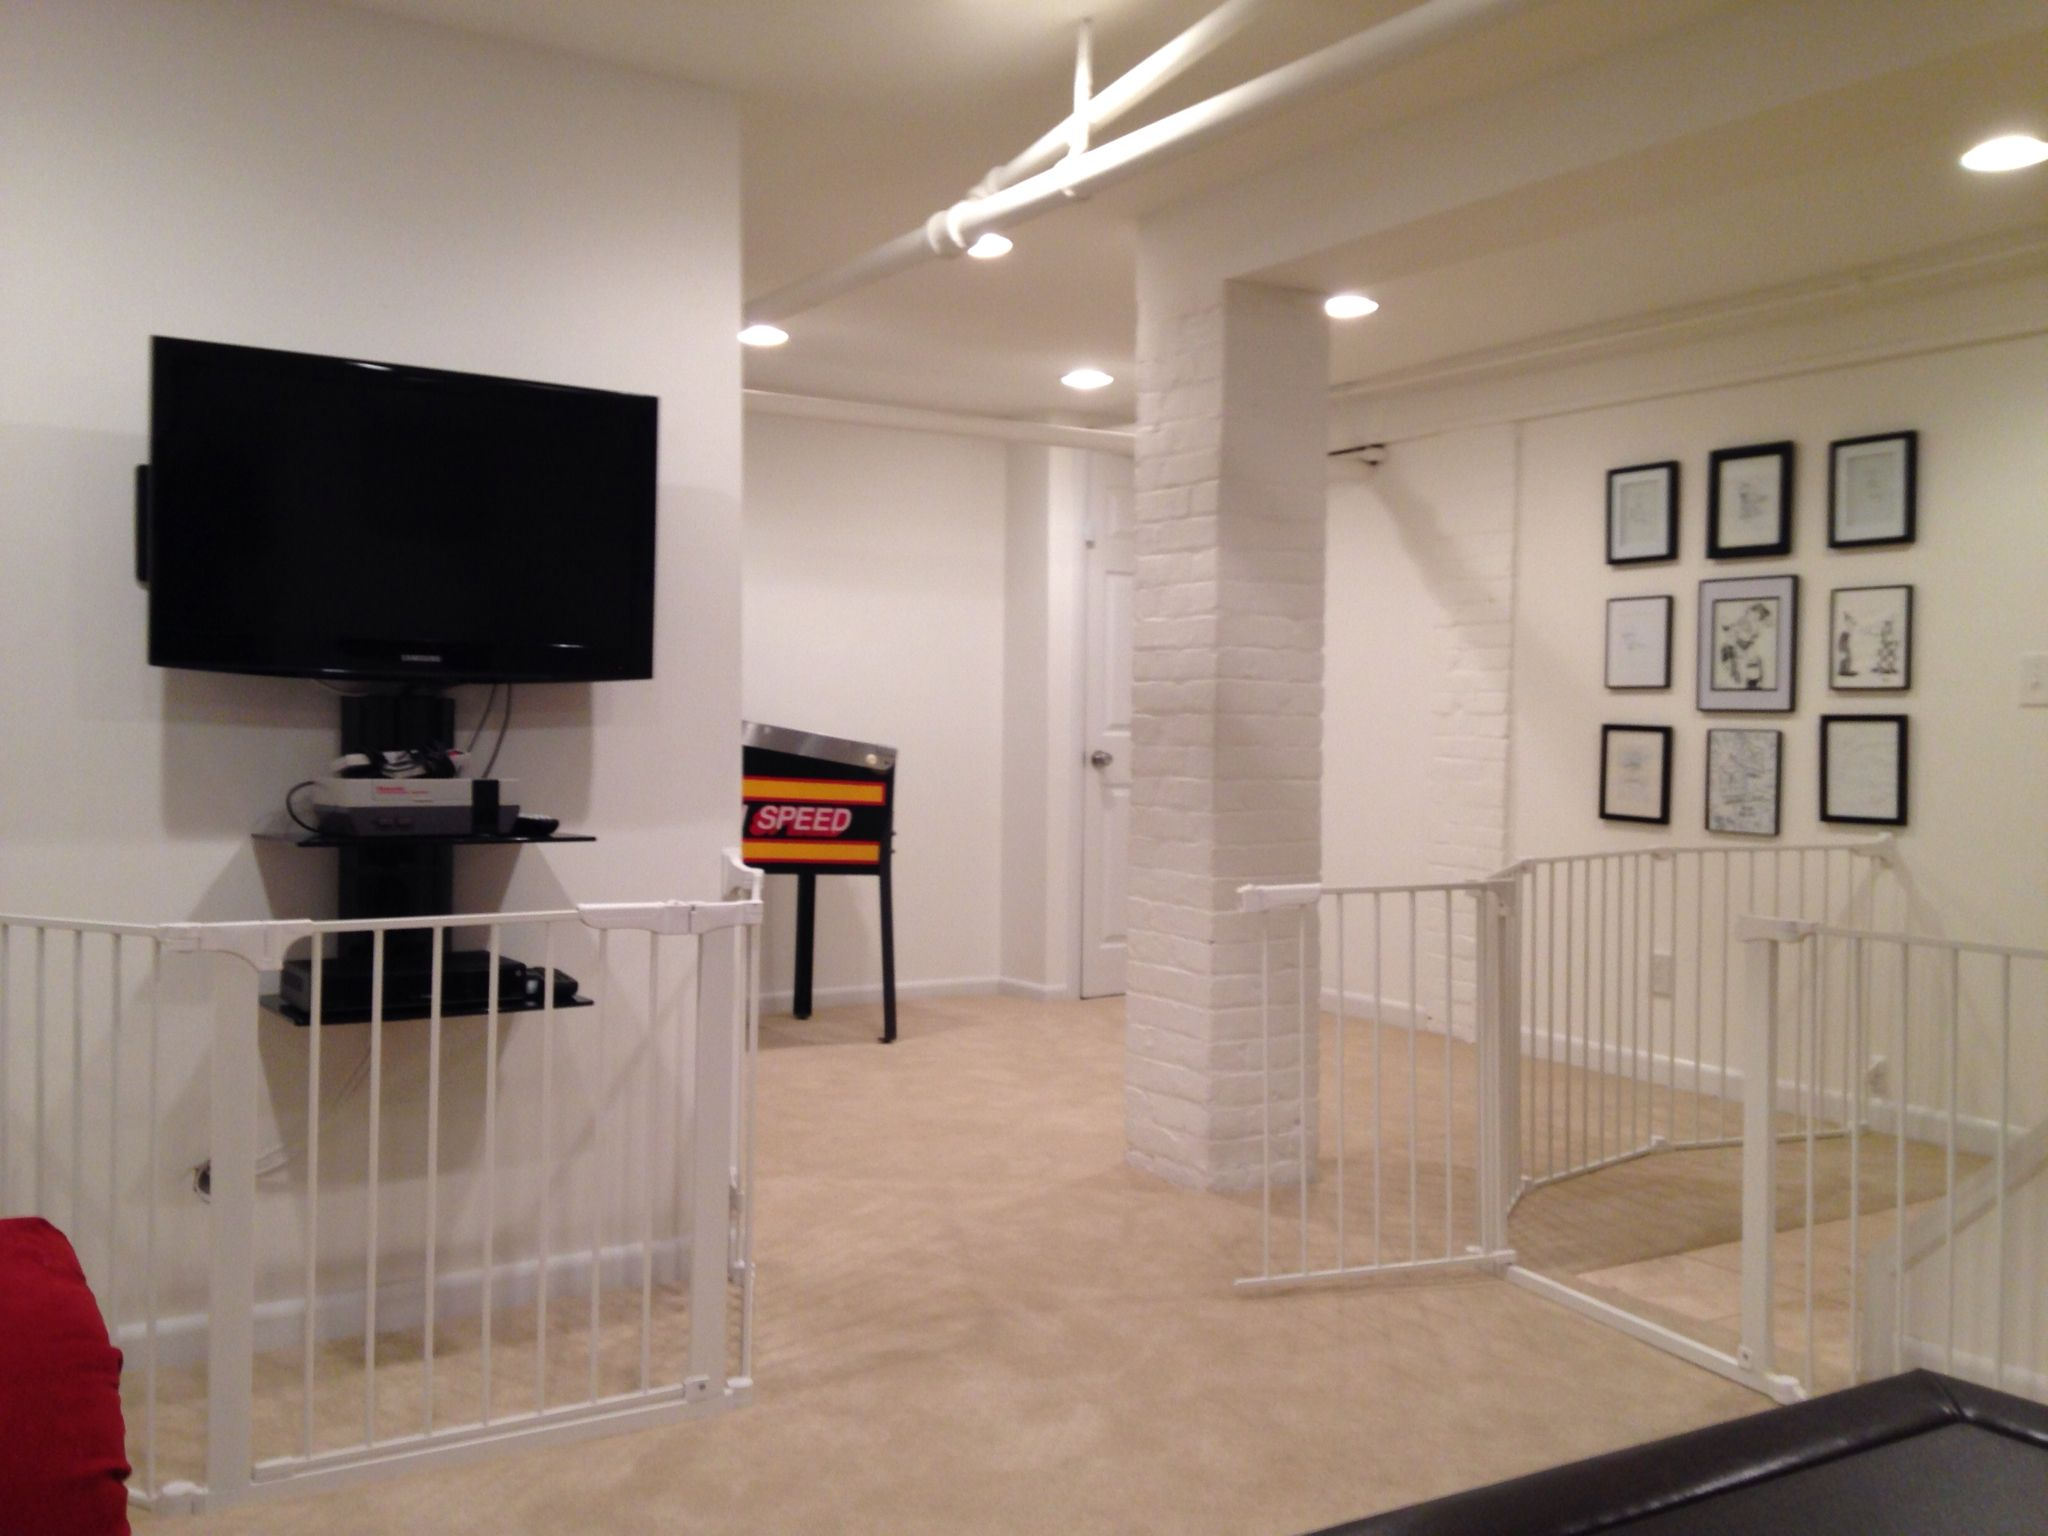 A Finished Basement With The Entertainment Center Gated Off An Additional Gate To Limit Access To The Staircase The Laundry R Baby Gates Home Baby Proofing